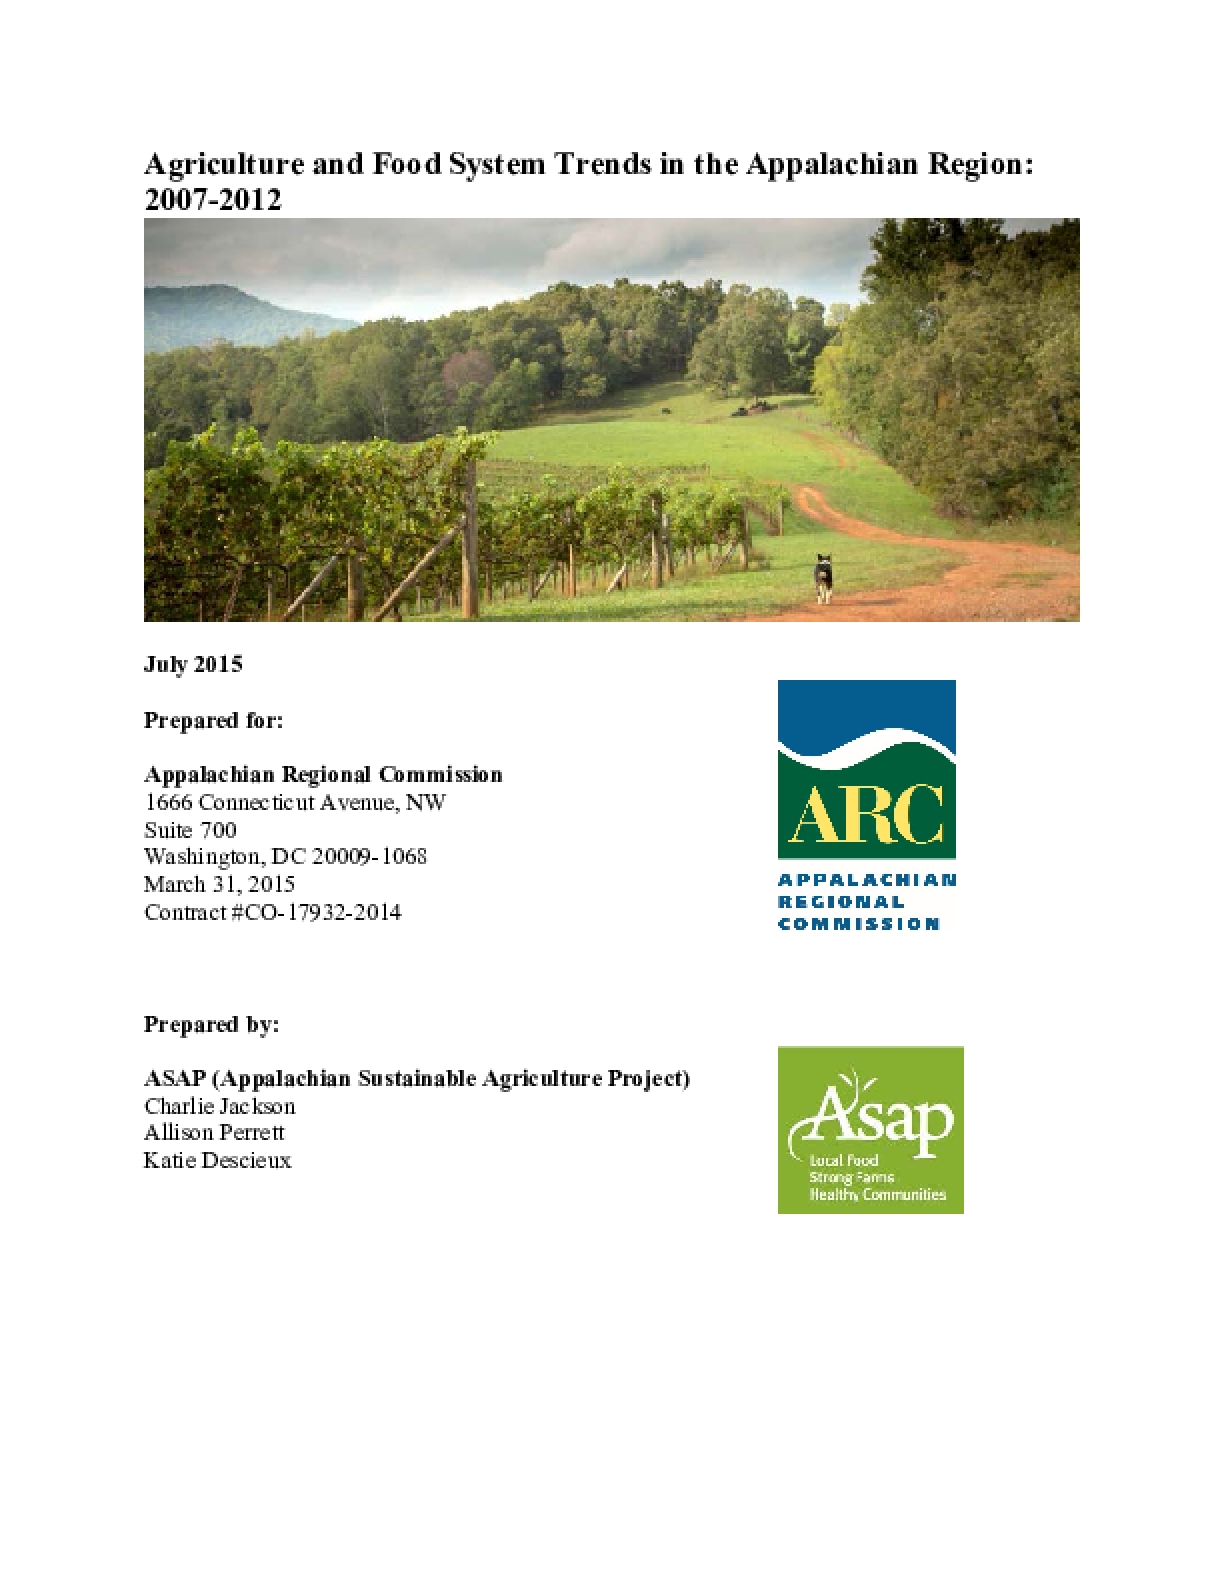 Agriculture and Food System Trends in the Appalachian Region:  2007- 2012